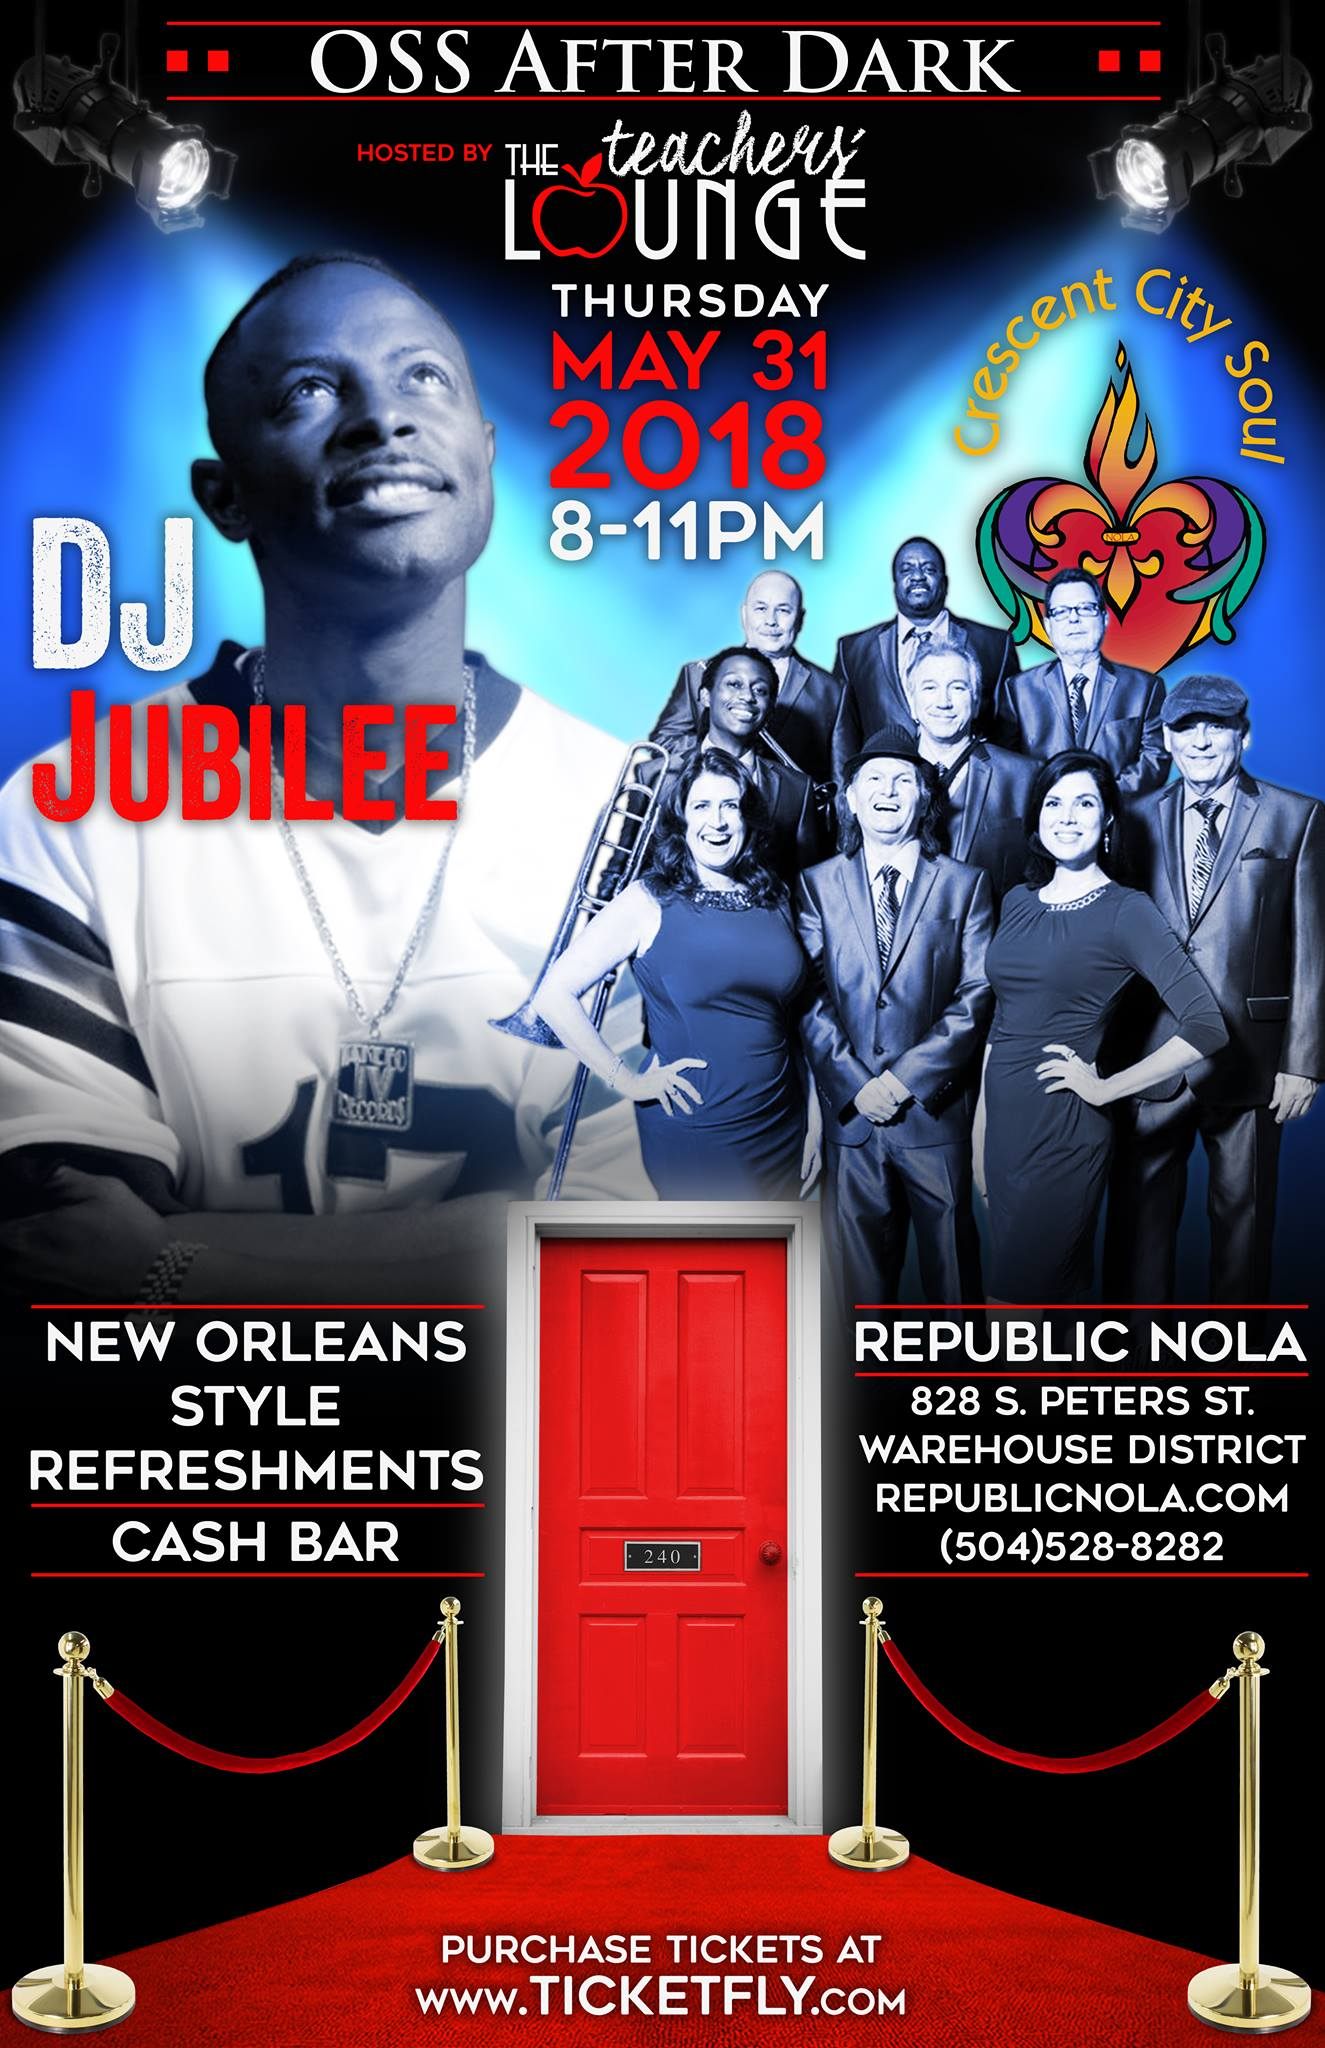 OSS After Dark - Republic New Orleans